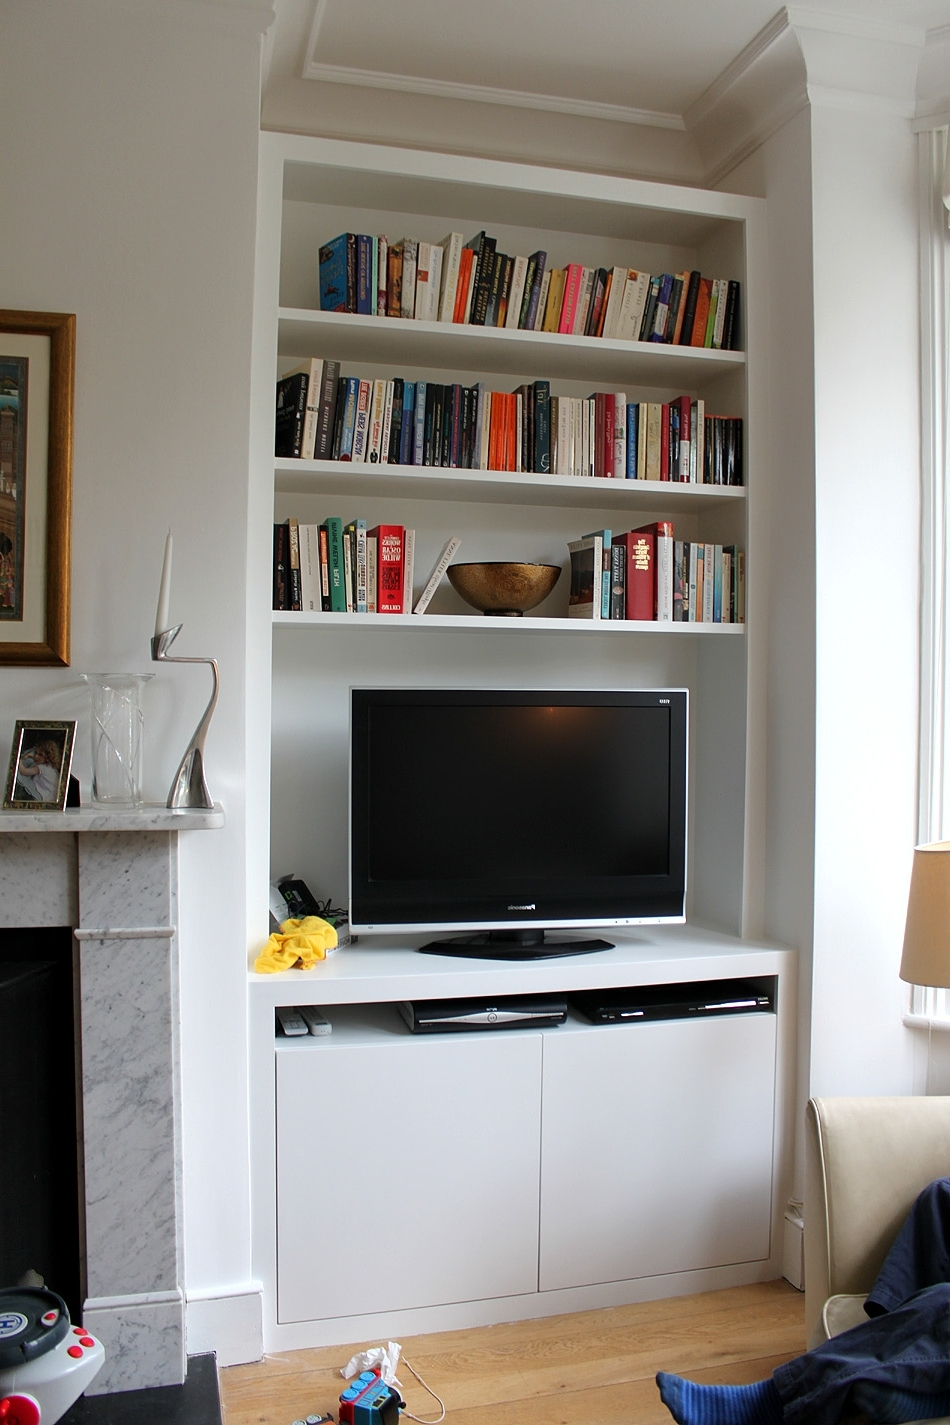 Fitted Wardrobes, Bookcases, Shelving, Floating Shelves, London Pertaining To Most Current Bespoke Tv Cabinets (View 7 of 15)